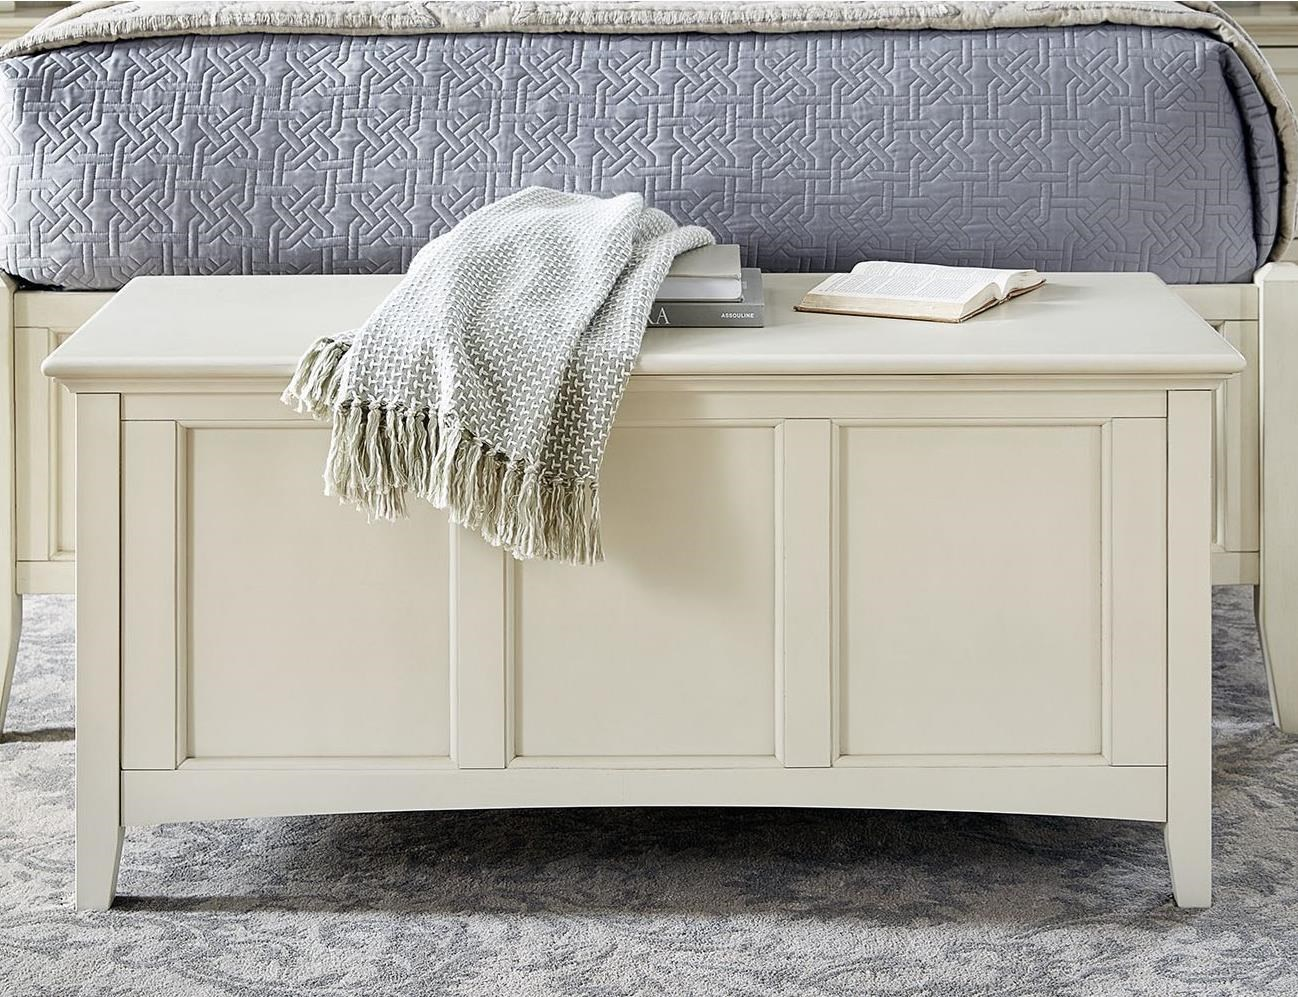 Northlake Cedar Lined Blanket Trunk by A-A at Walker's Furniture